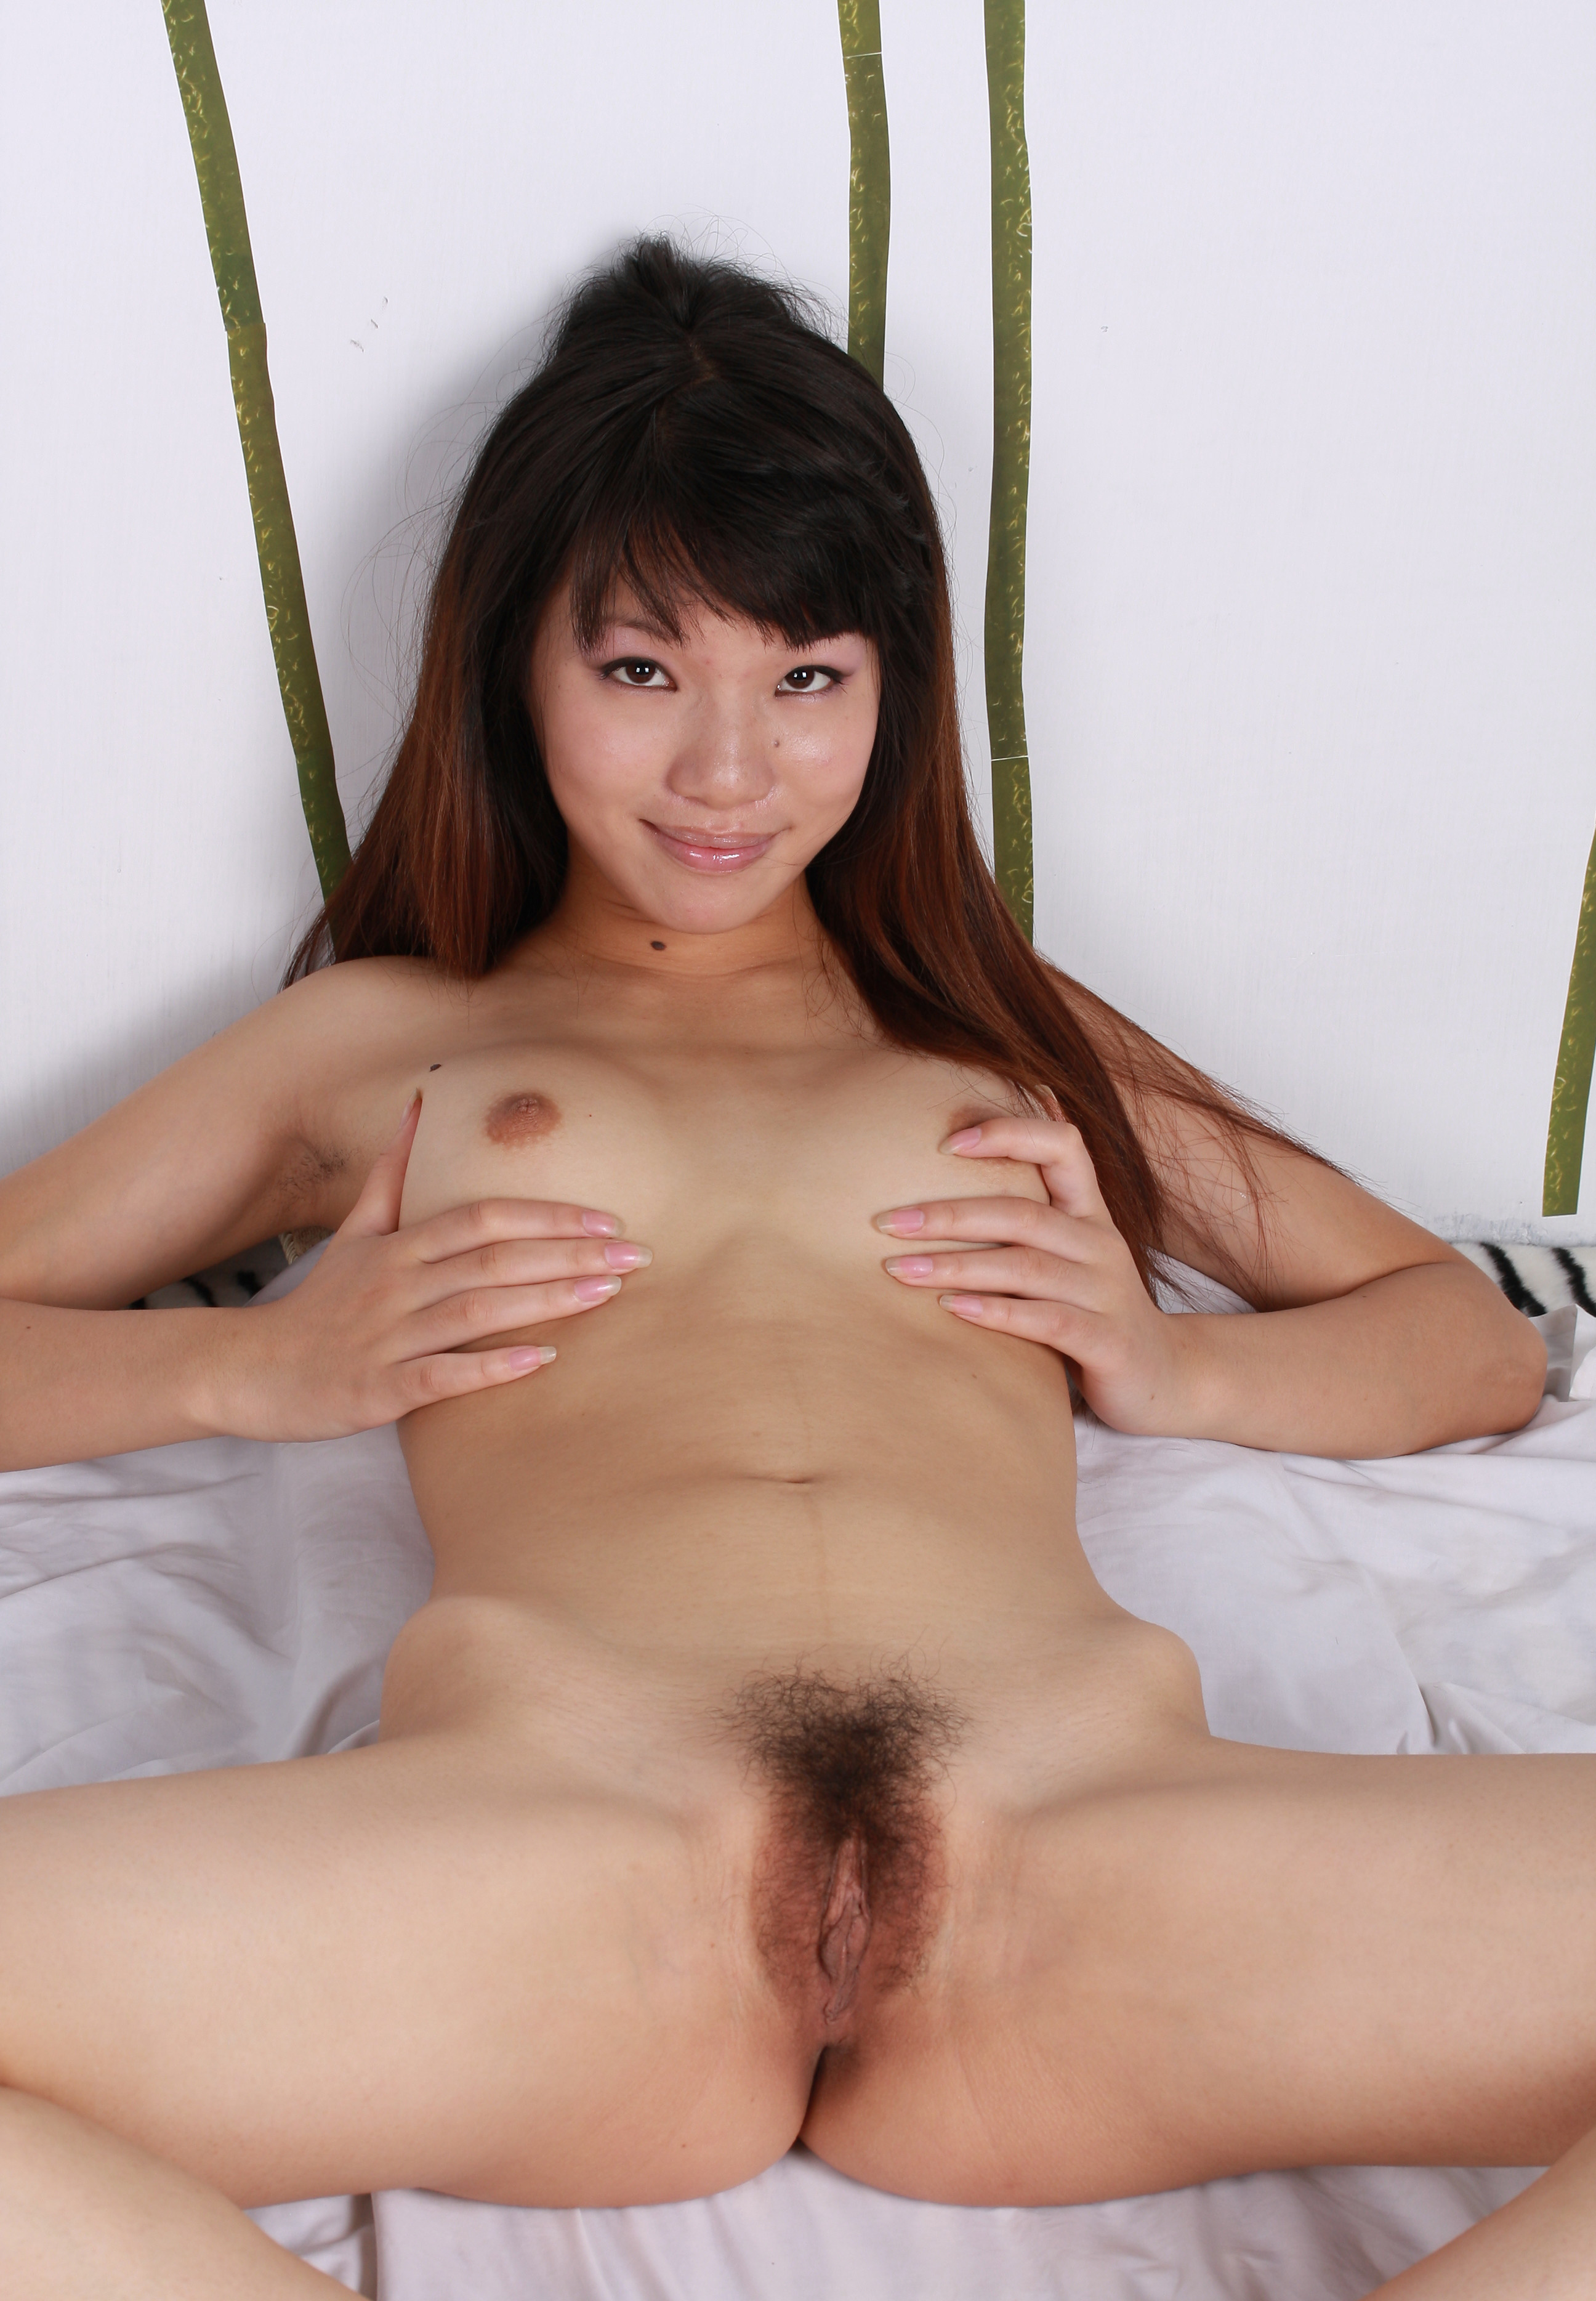 Chinese pussy porn pics